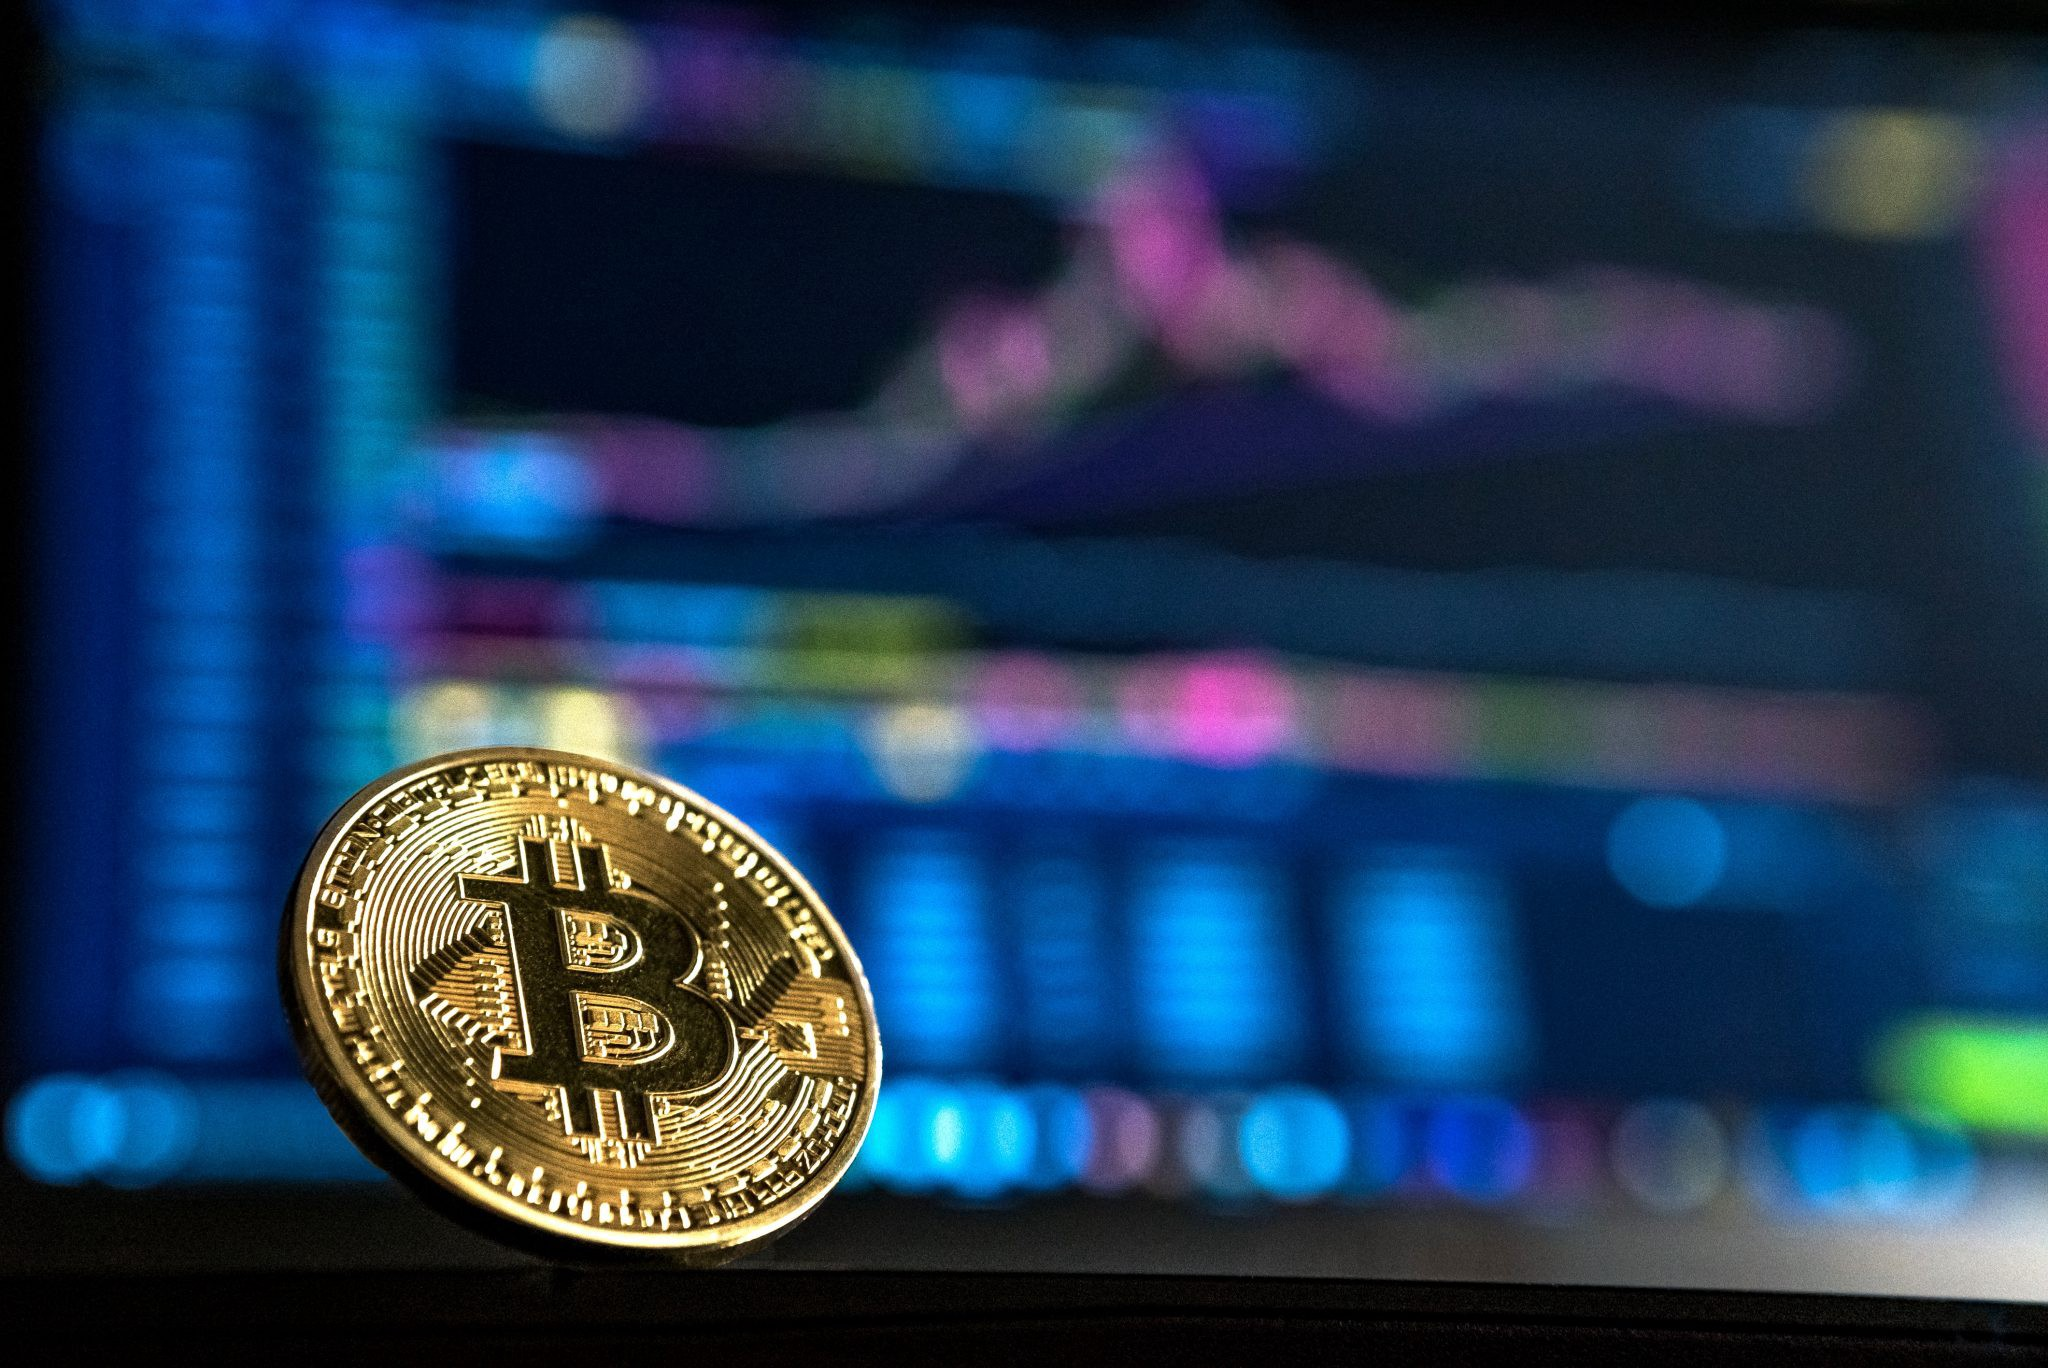 Multiply bitcoins times 100 get physical bitcoins